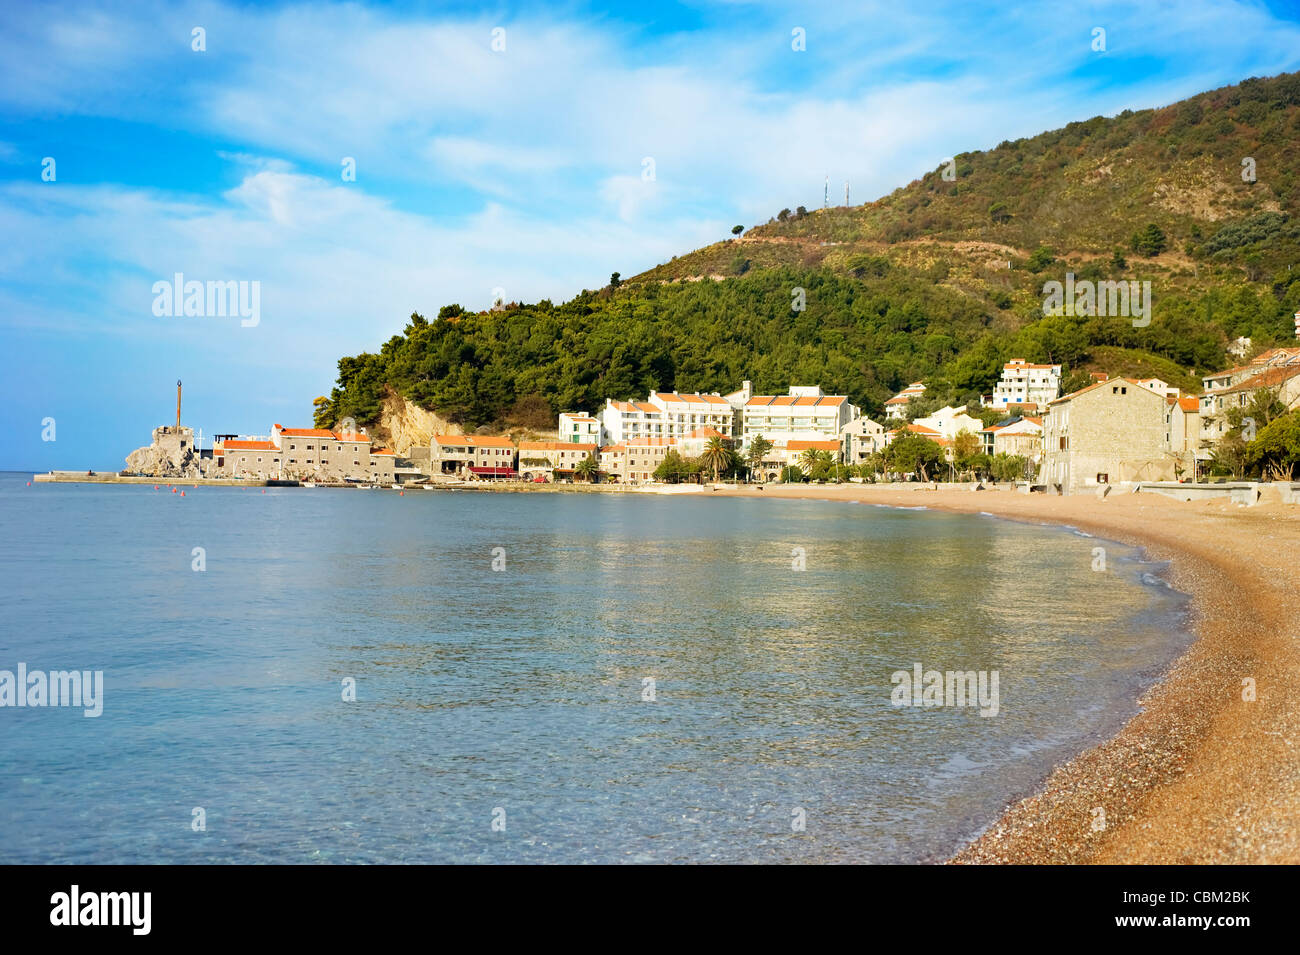 Beach in Petrovac city in the sunshine day. Montenegro - Stock Image